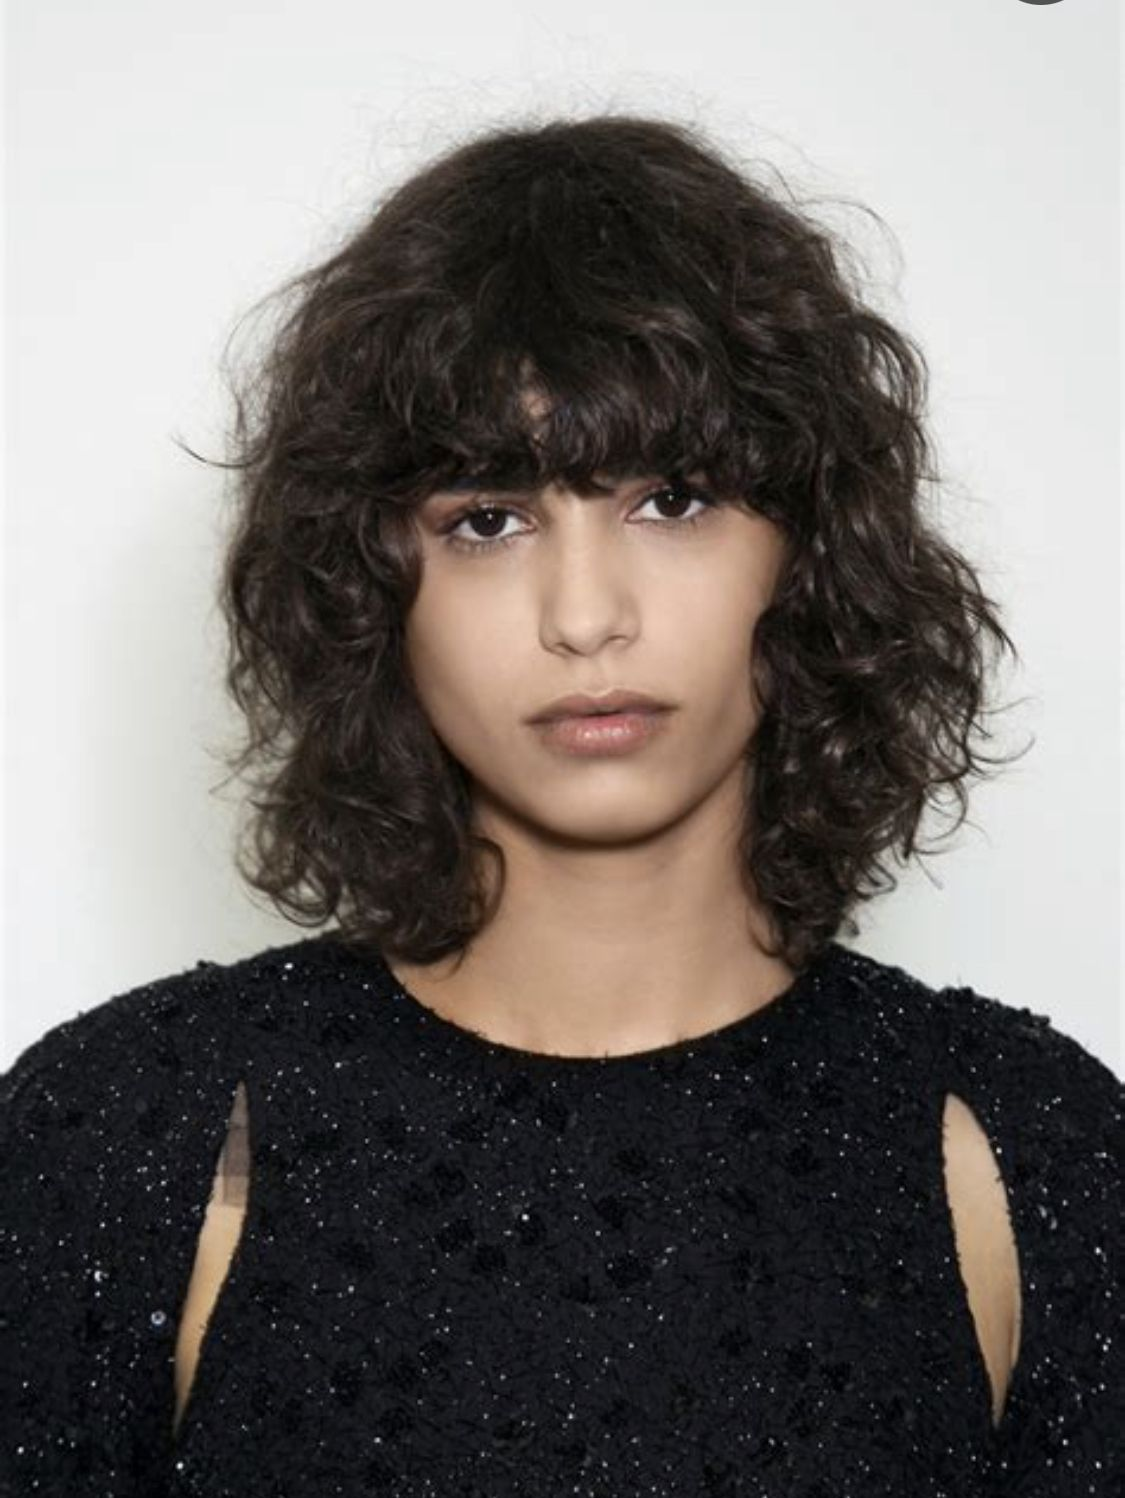 Pin By Regina Philange On Bangs Wavy Hair In 2020 Curly Hair Styles Curly Bangs Curly Hair Styles Naturally